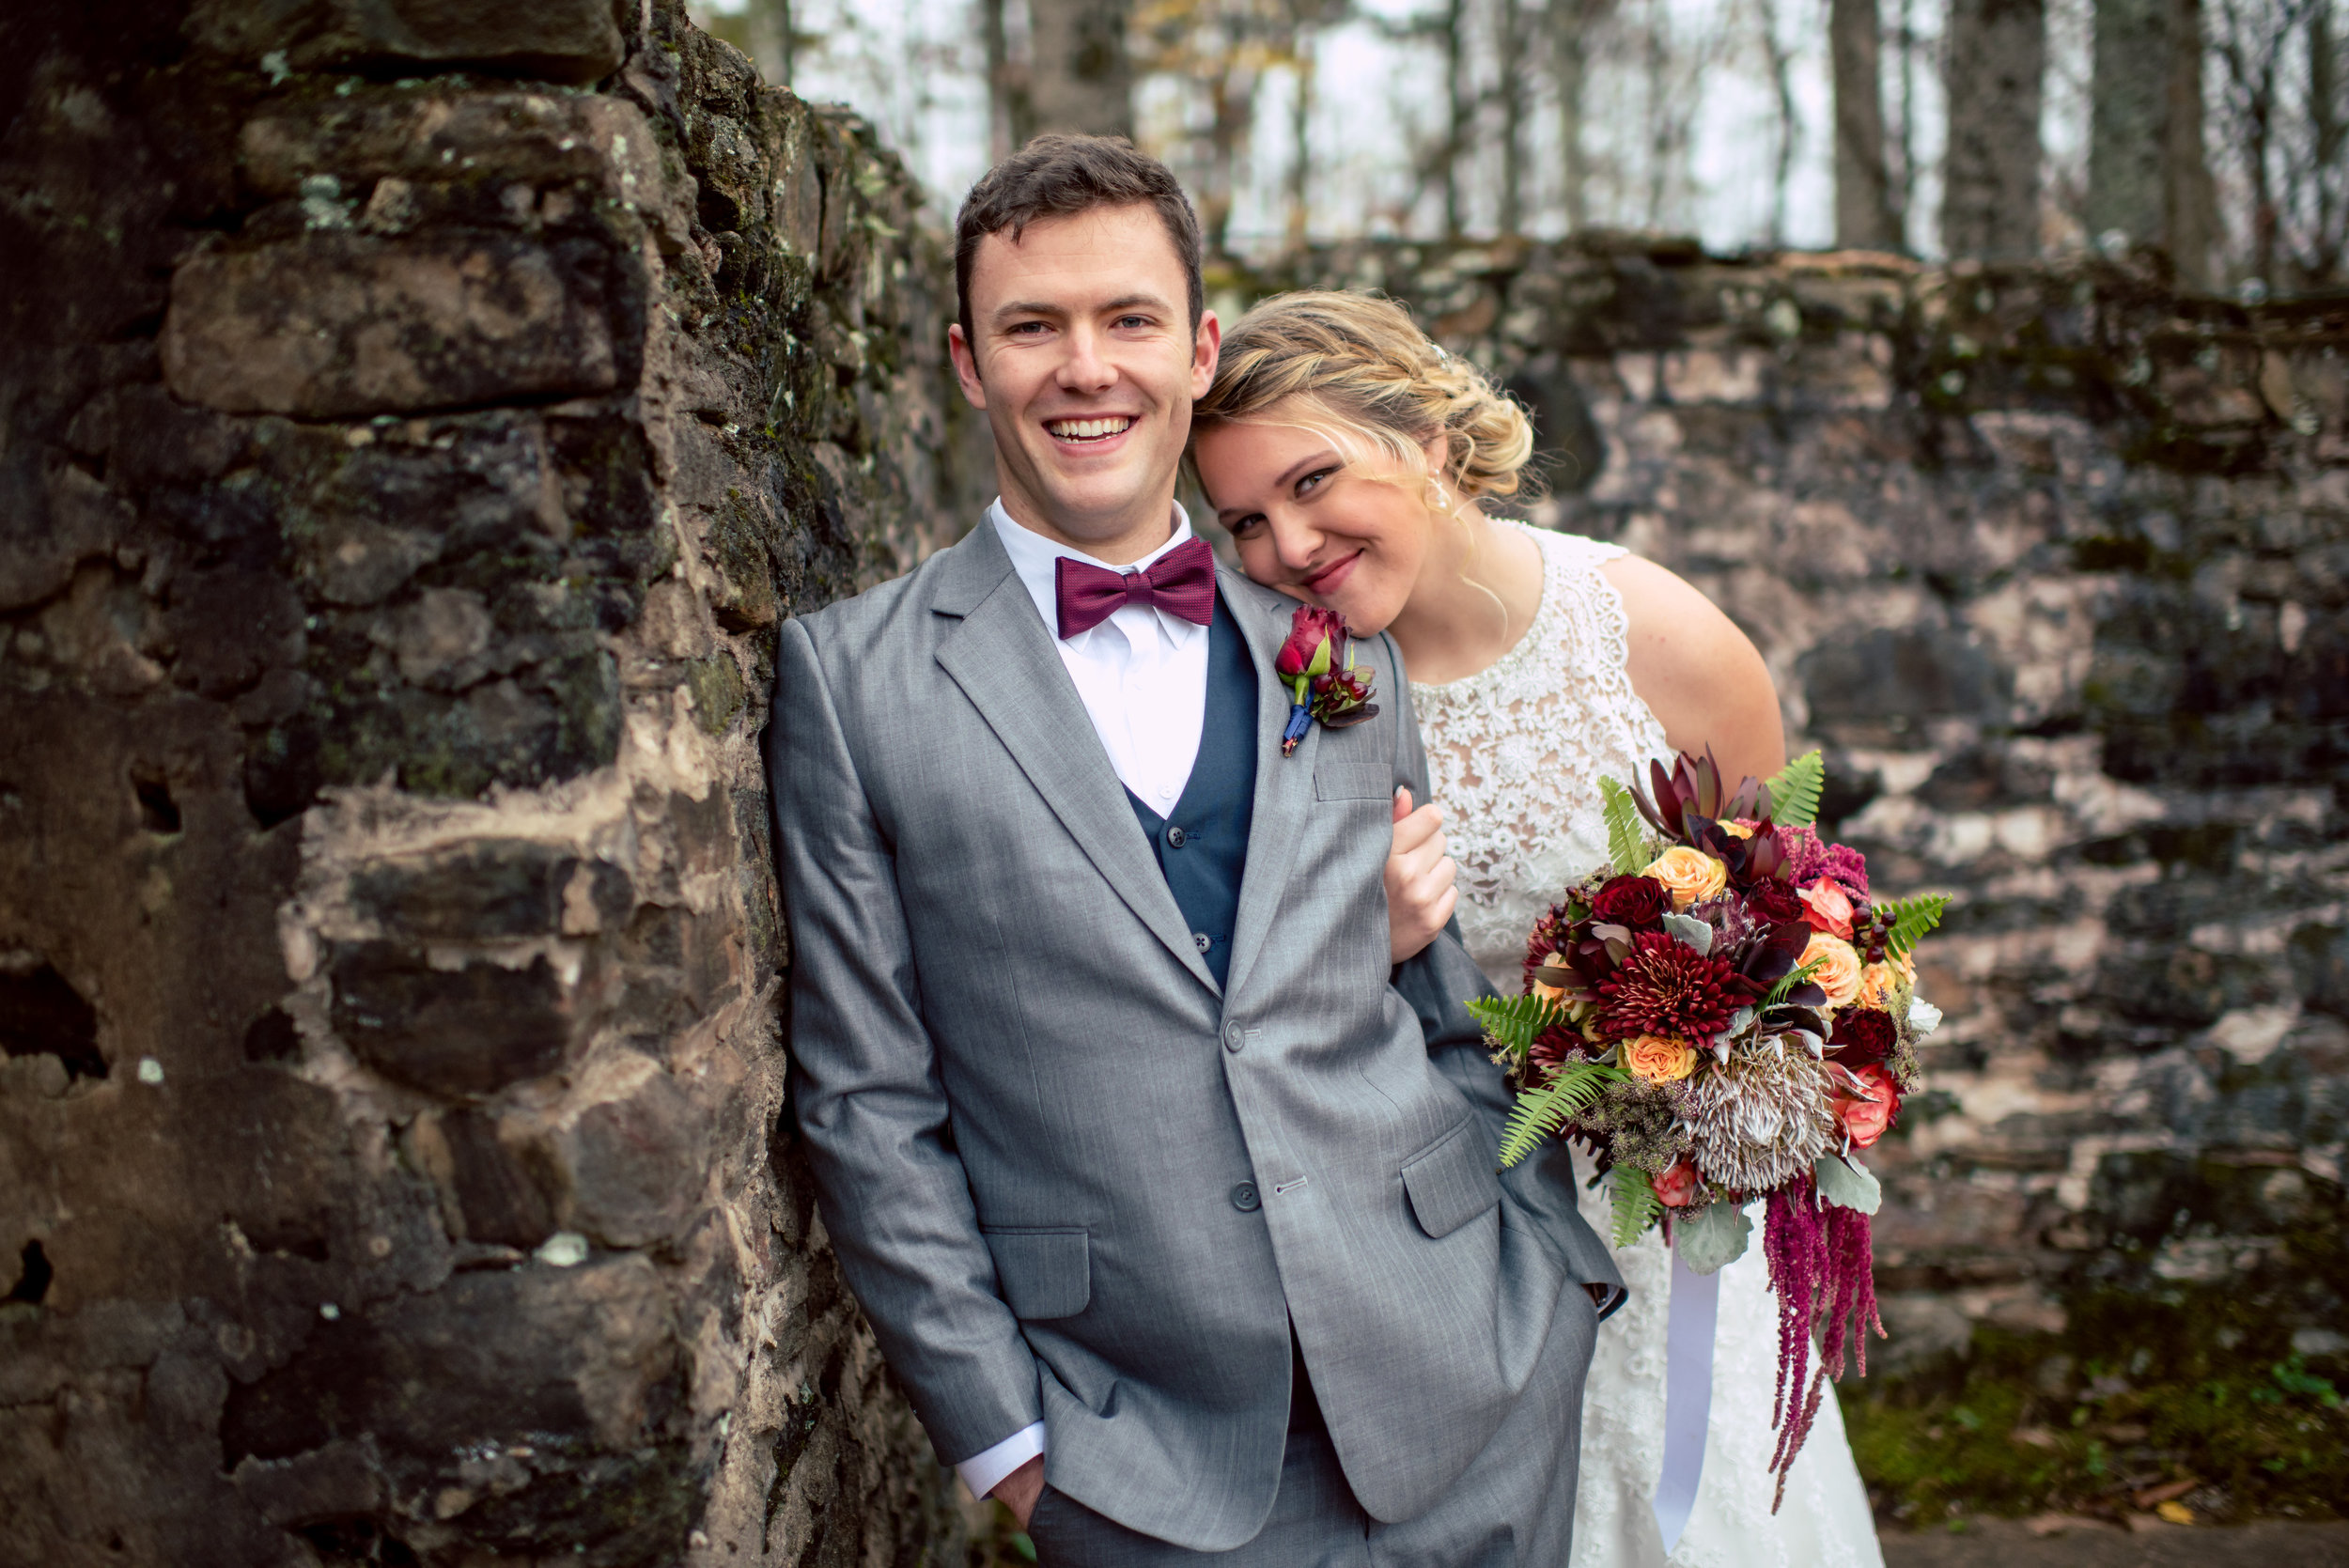 A Romantic, Jewel Toned Fall Wedding at The Ruins. Bridal Bouquet featuring jewel colored flowers including protea, leucadendron, roses, hypericum berries, hanging amaranthus and fern.  Flowers by Flower Buds. Picture by Once Like a Spark Photography. Venue The Ruins at Kellum Valley Farm